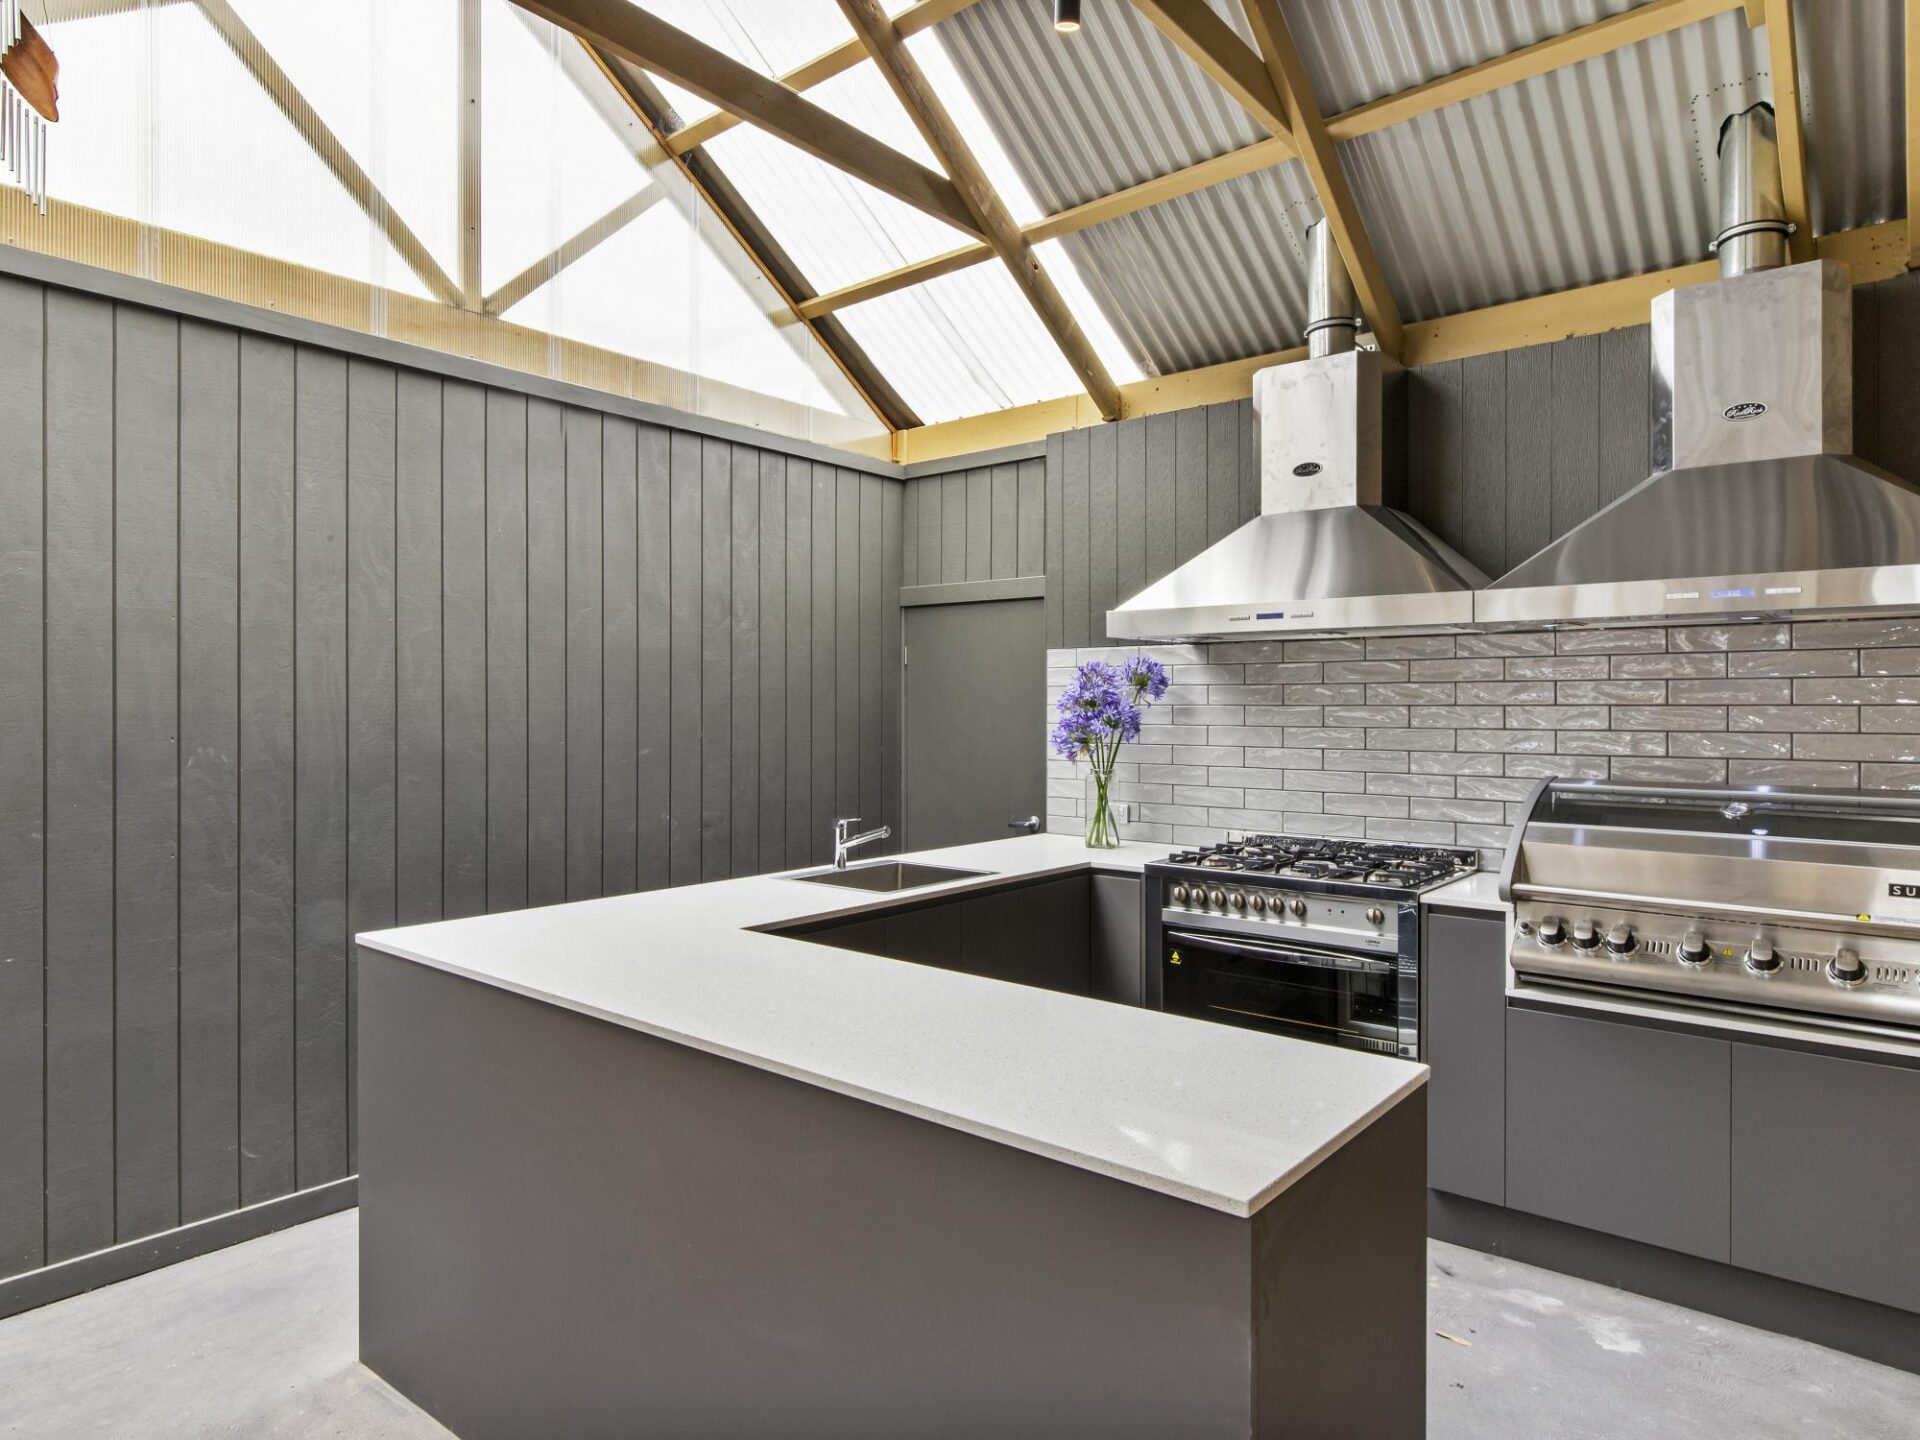 Kitchen Appliances Renovations Services by Bayview Renovations